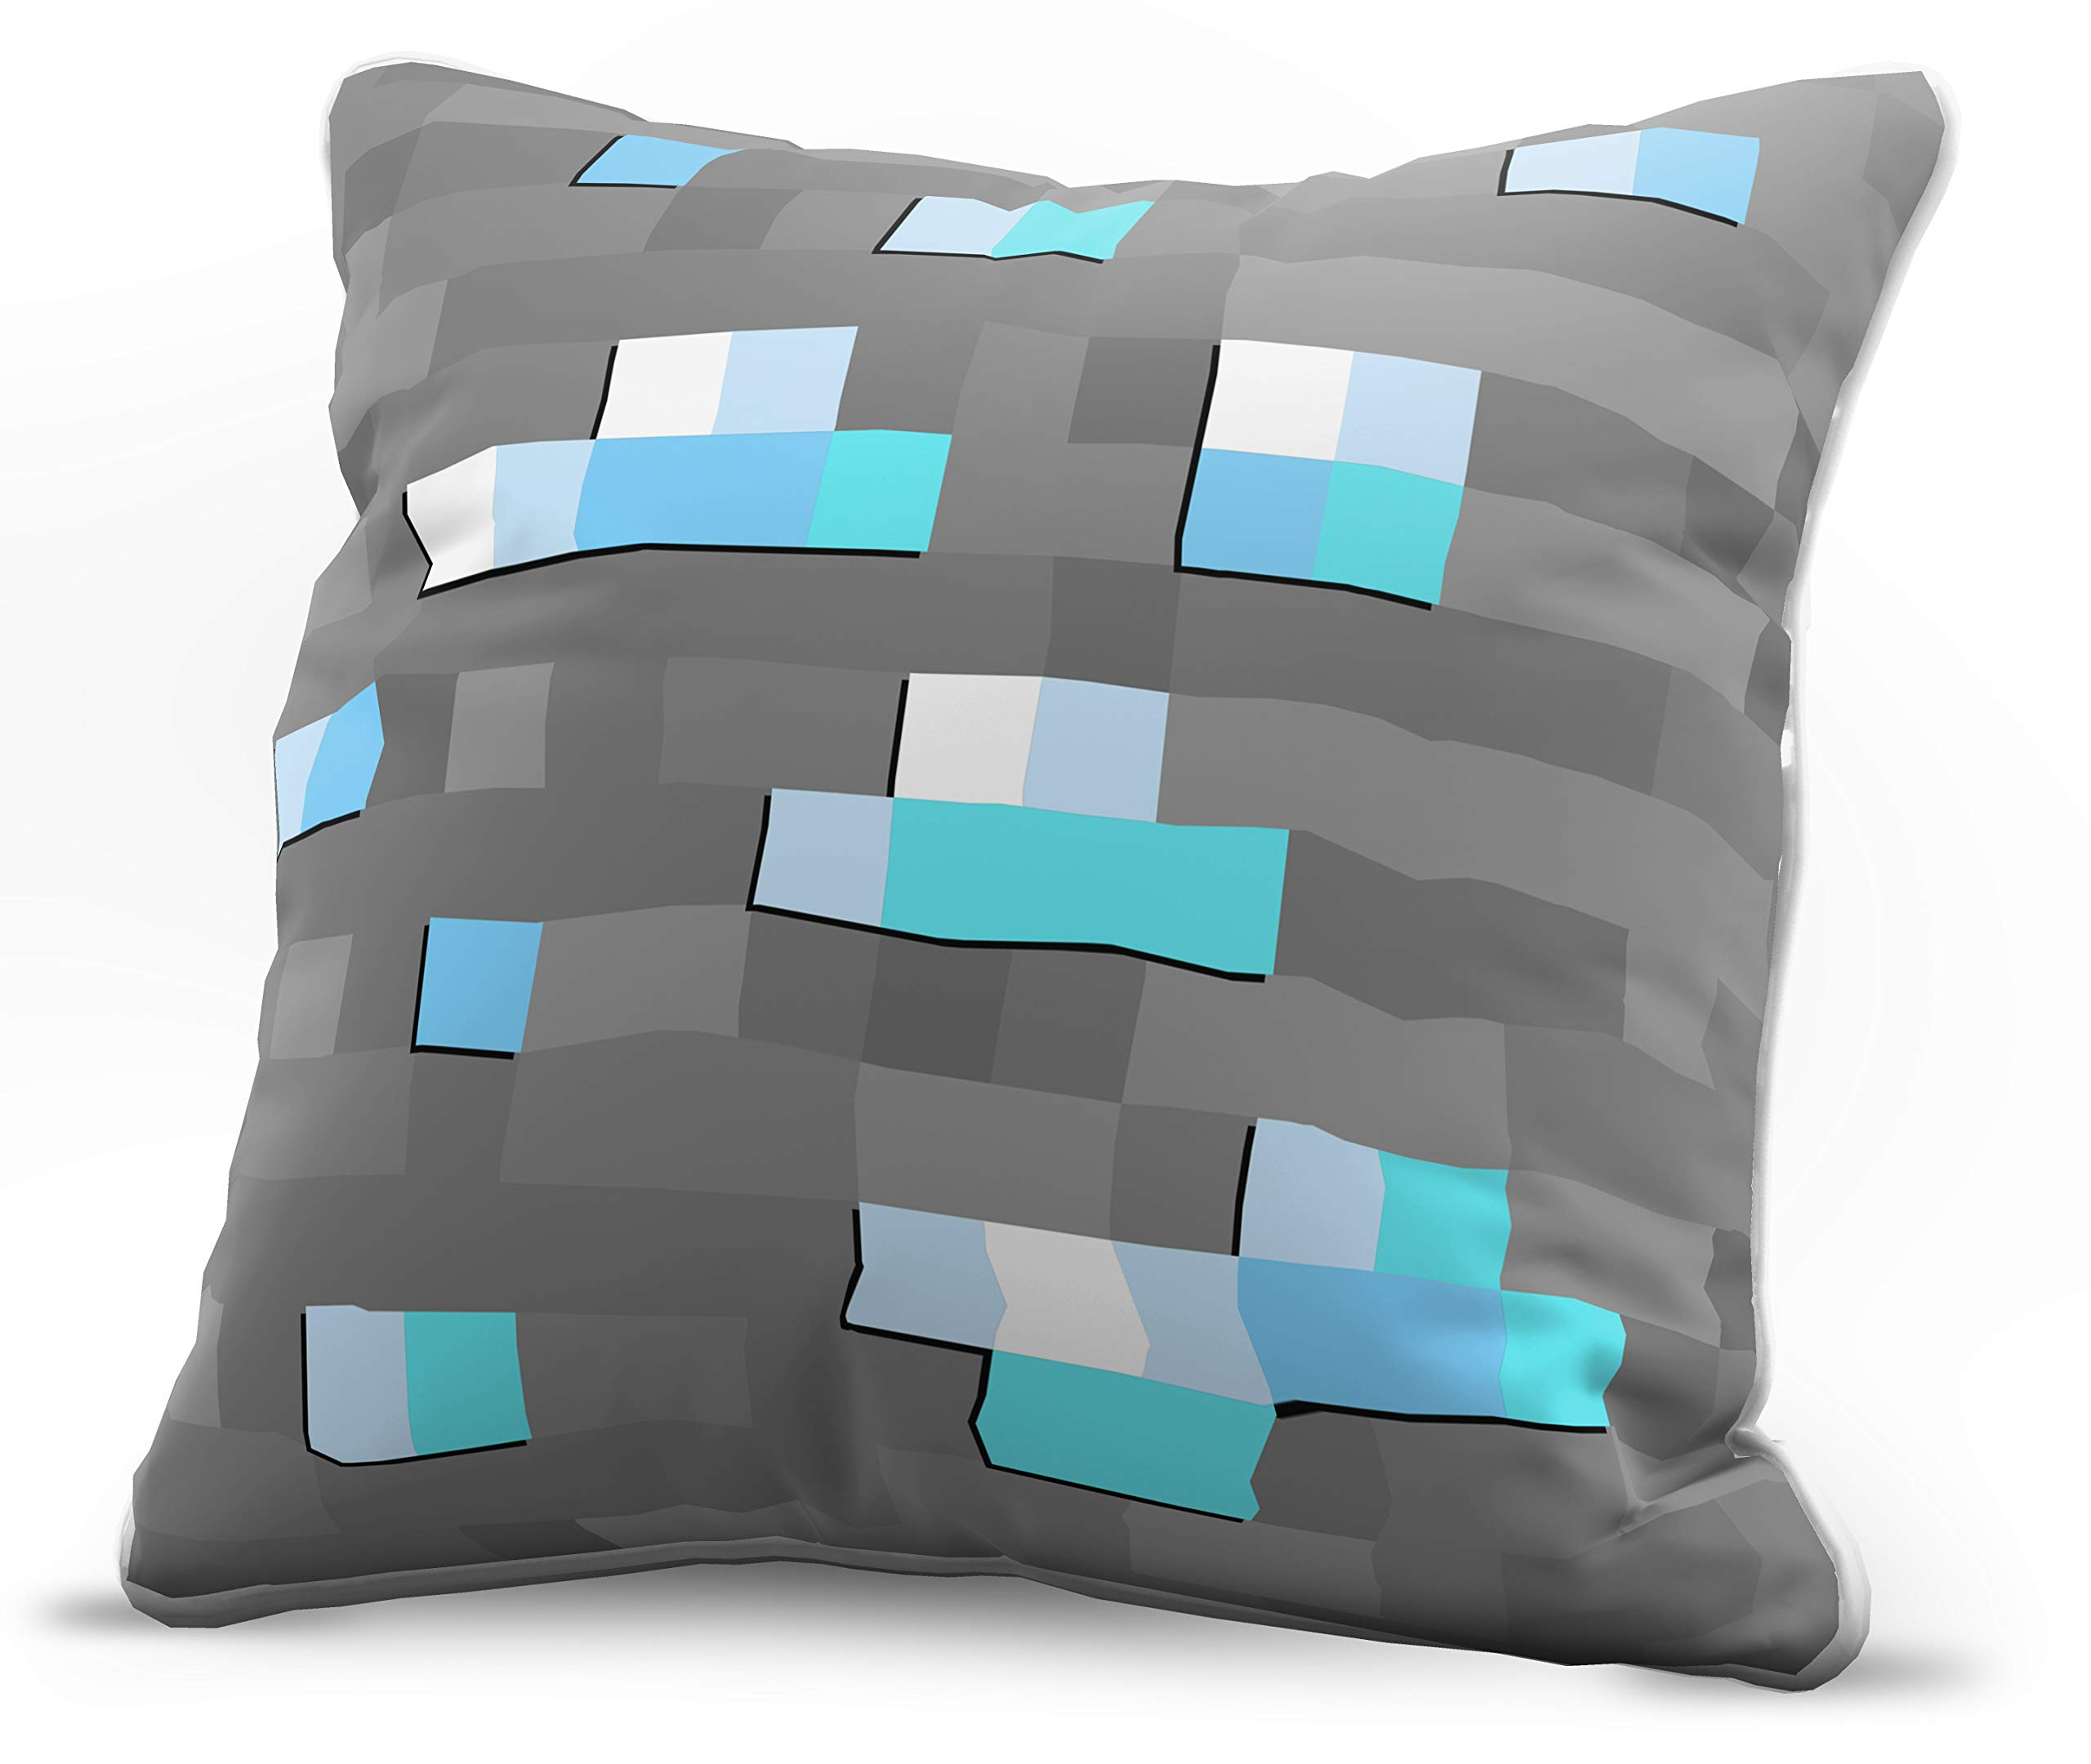 Official Minecraft Product Jay Franco Minecraft Pumpkin Decorative Pillow Cover Kids Super Soft 1-Pack Throw Pillow Cover Measures 15 Inches x 15 Inches